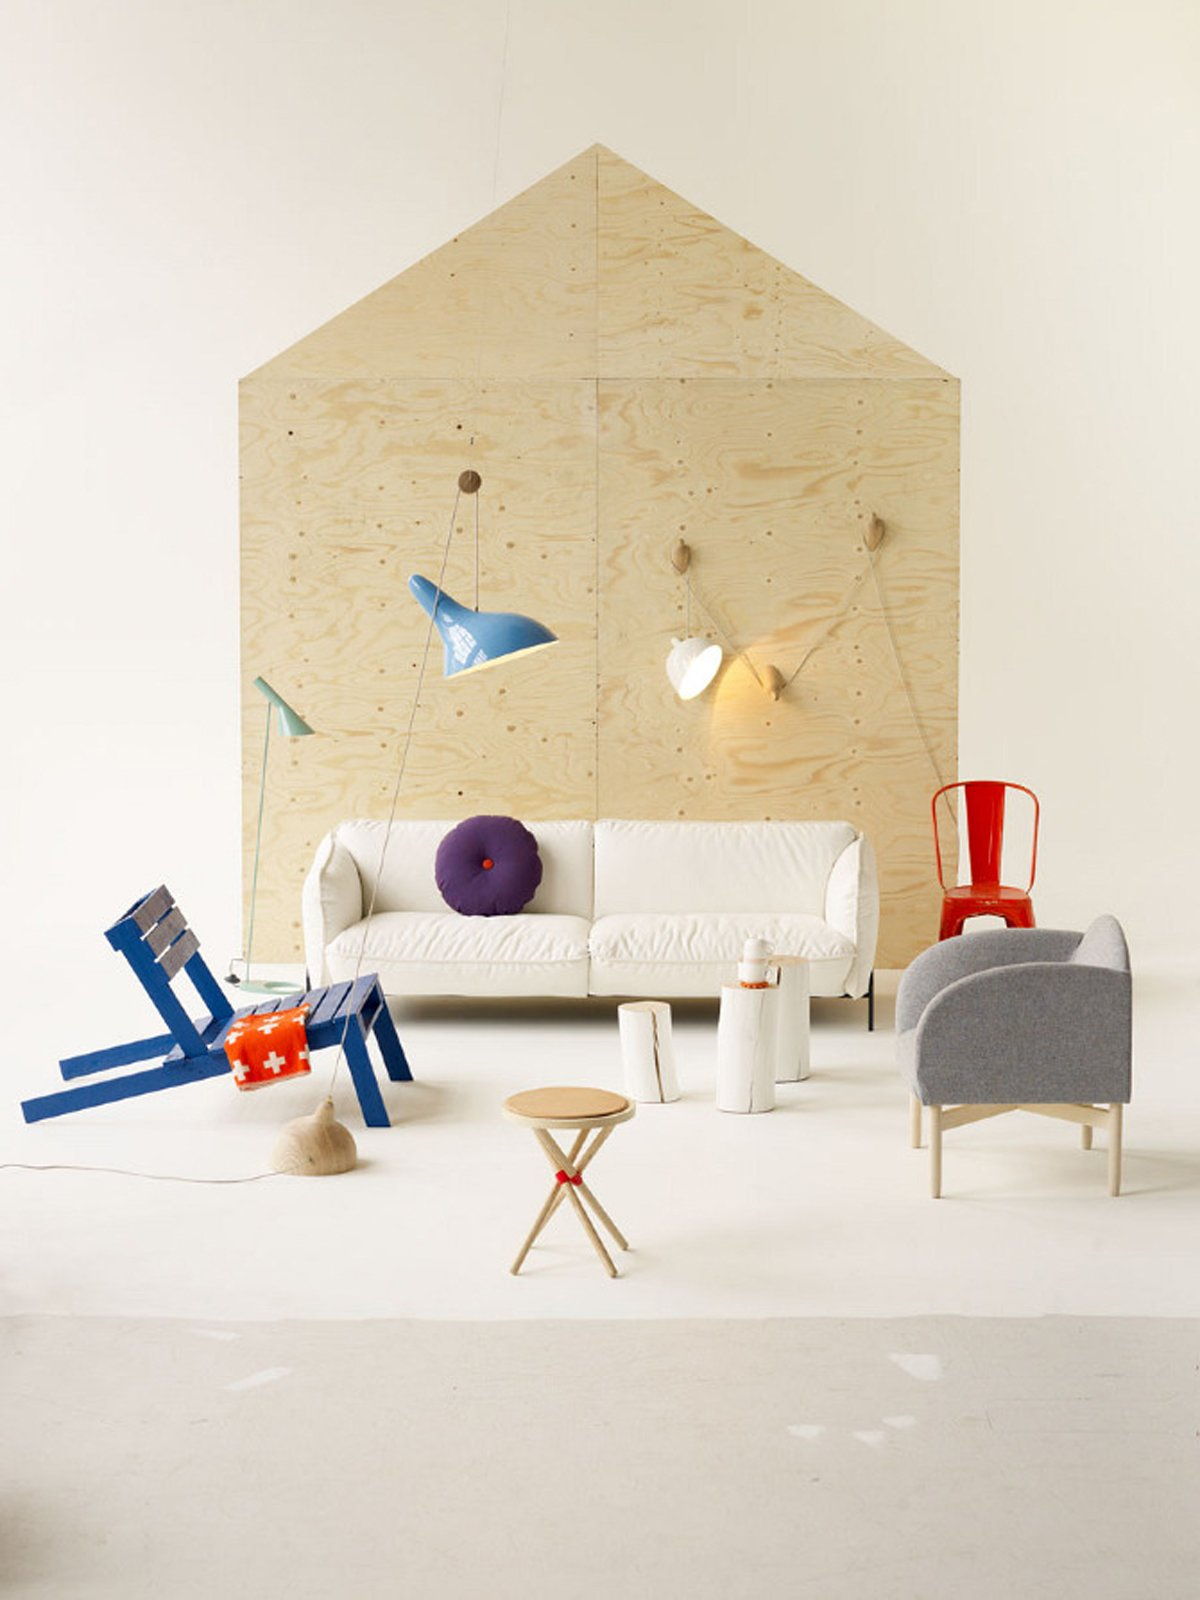 """The Scandi House is a modern furniture lover's dream—painted Drawing Room Blue by Farrow & Ball wooden chair made after a description by Nina Tolstrup of Studiomama, small blanket by Pia Wallén, Couch Continental by Claesson, Koivisto, Rune for Swedese, Cushion Dot by Hay, white wooden logs by Paola Navone, Kinto teapot set from SLOWFASHIONhouse,  AJ Floor Lamp by Arne Jacobsen for Louis Poulsen, vintage orange Tolix chair, grey Moln(Cloud) armchair by Anderssen & Voll for Stolab, Rondo Stool by Jakob Thau for Källemo, and Francis lamp wall installation by dmoch. Photo by: Per Ranung  Search """"our scandinavian style dreams come true brooklyn town house"""" from Styled by Tina Hellberg"""